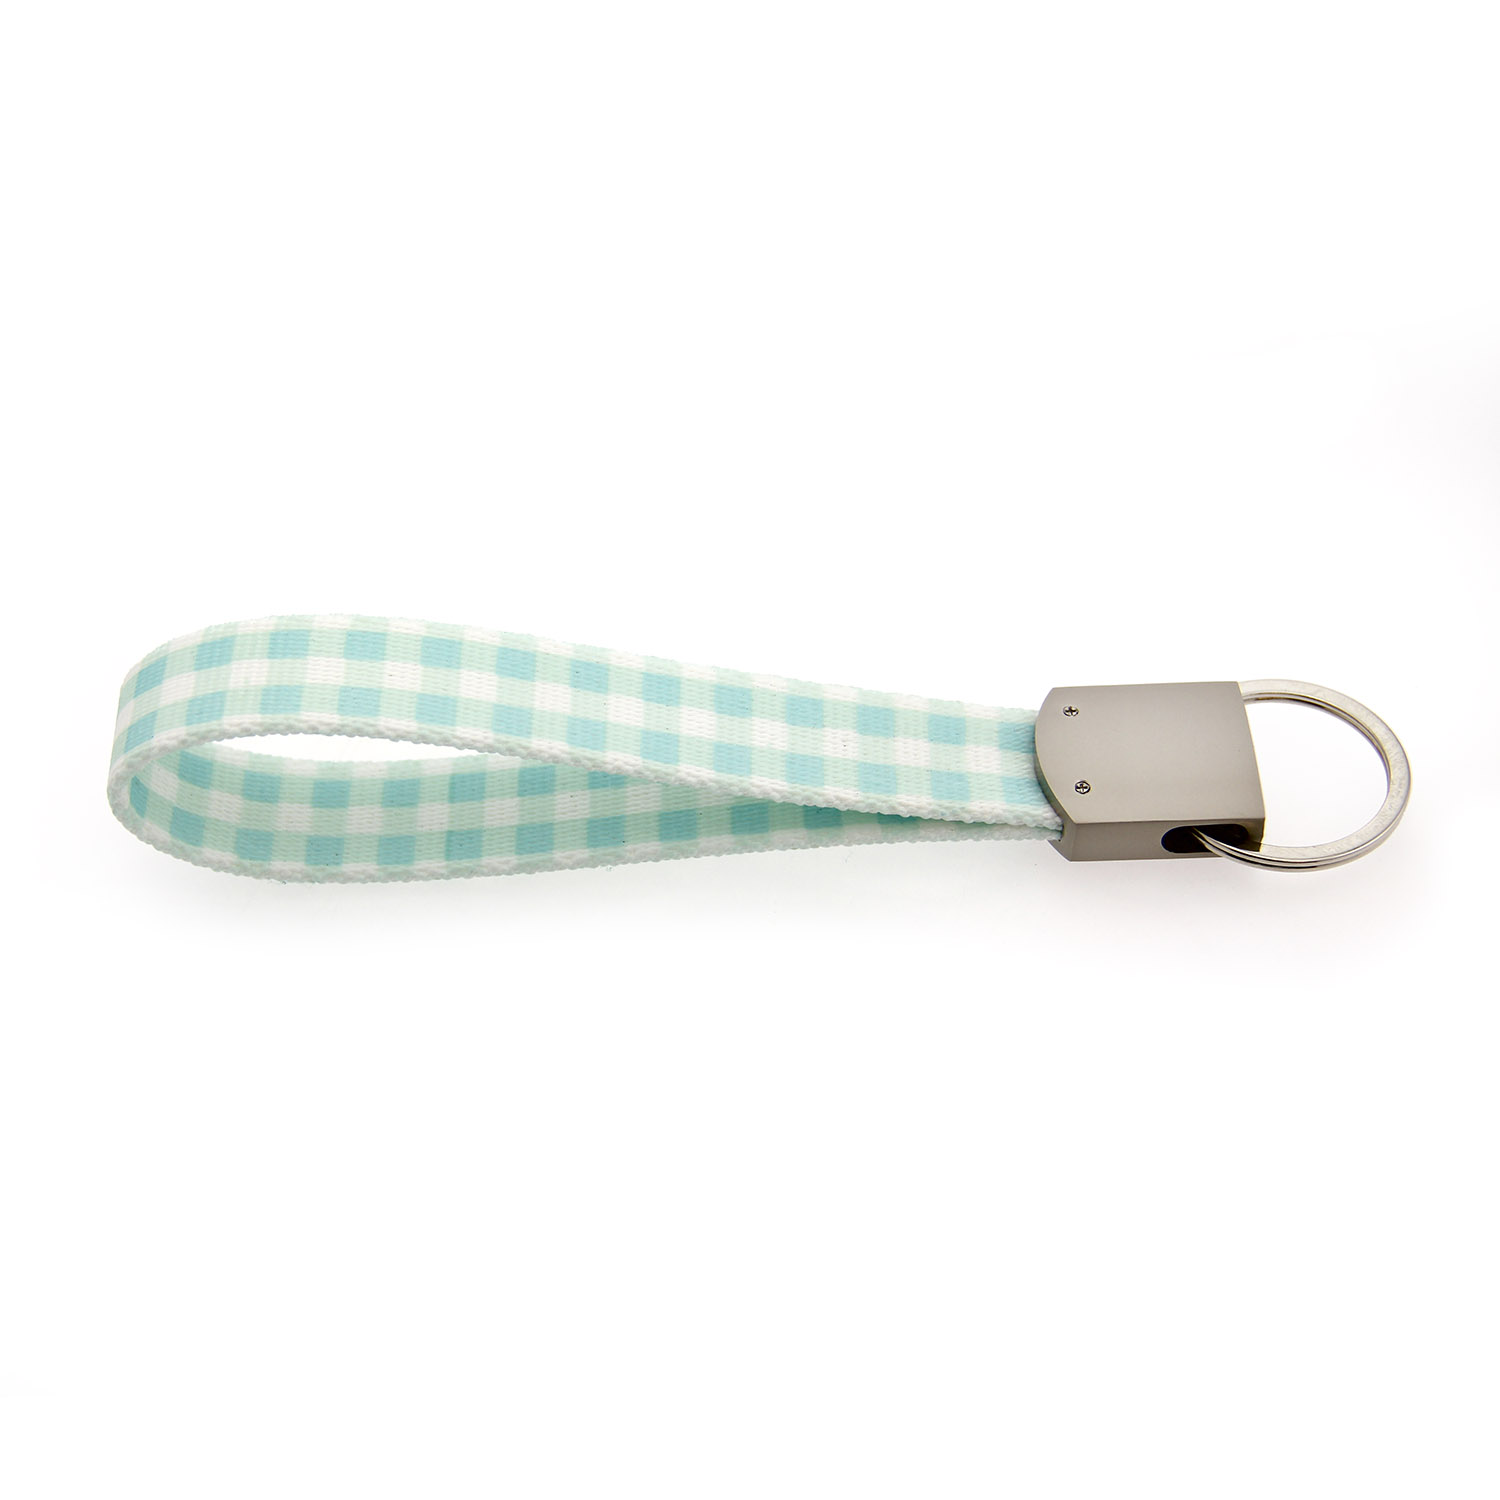 Southern Dawg Gingham Keychain - Mint